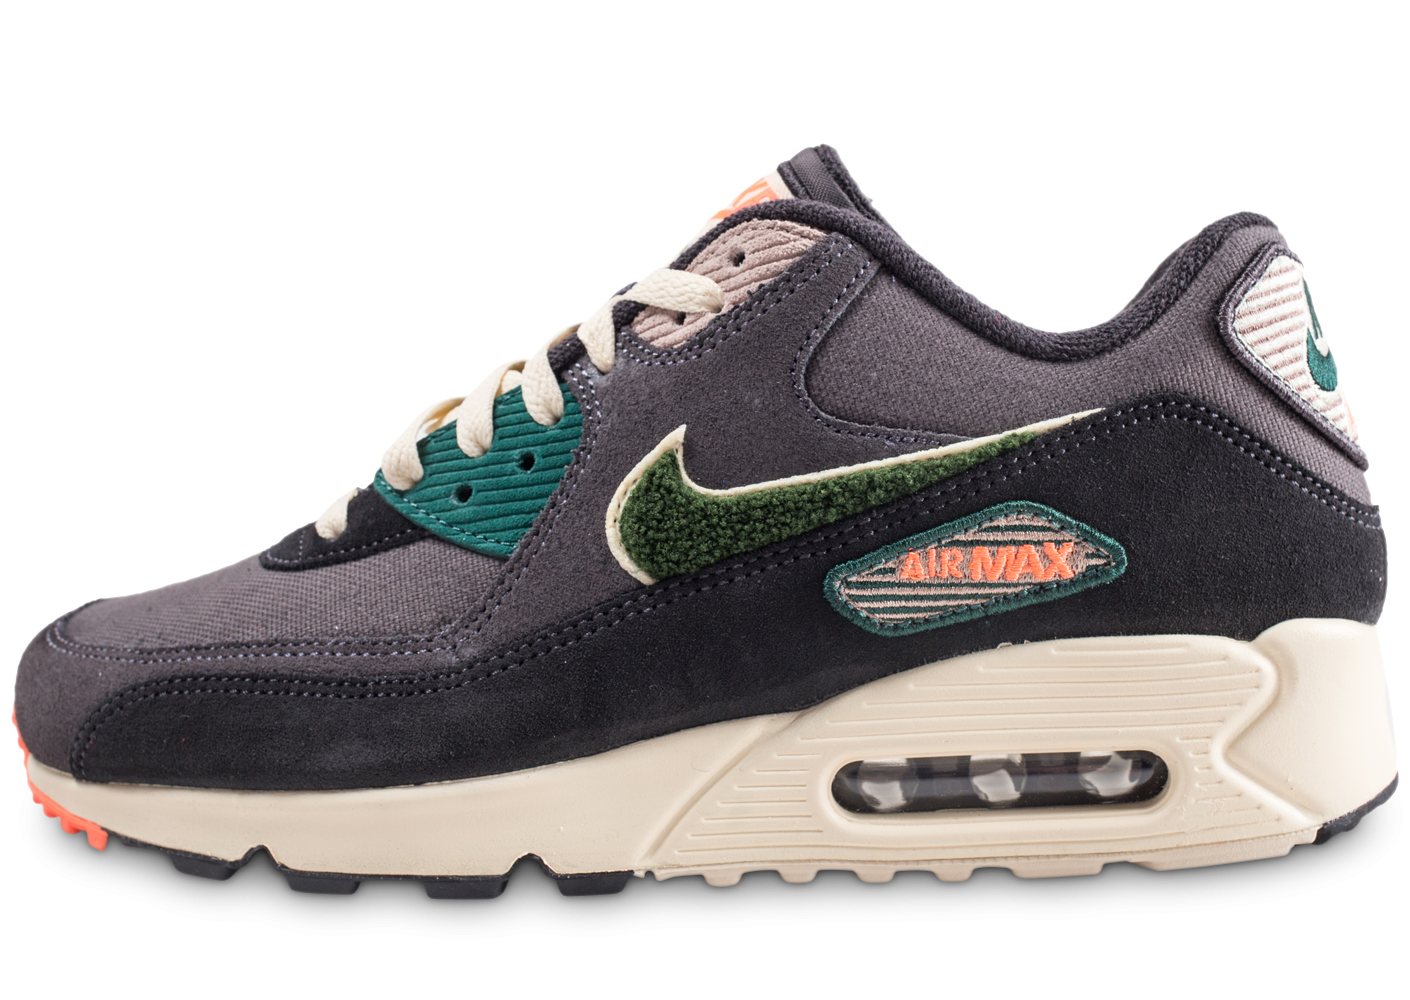 the latest b8a9b 19949 Nike Air Max 90 Premium SE grises - Chaussures Baskets homme - Chausport